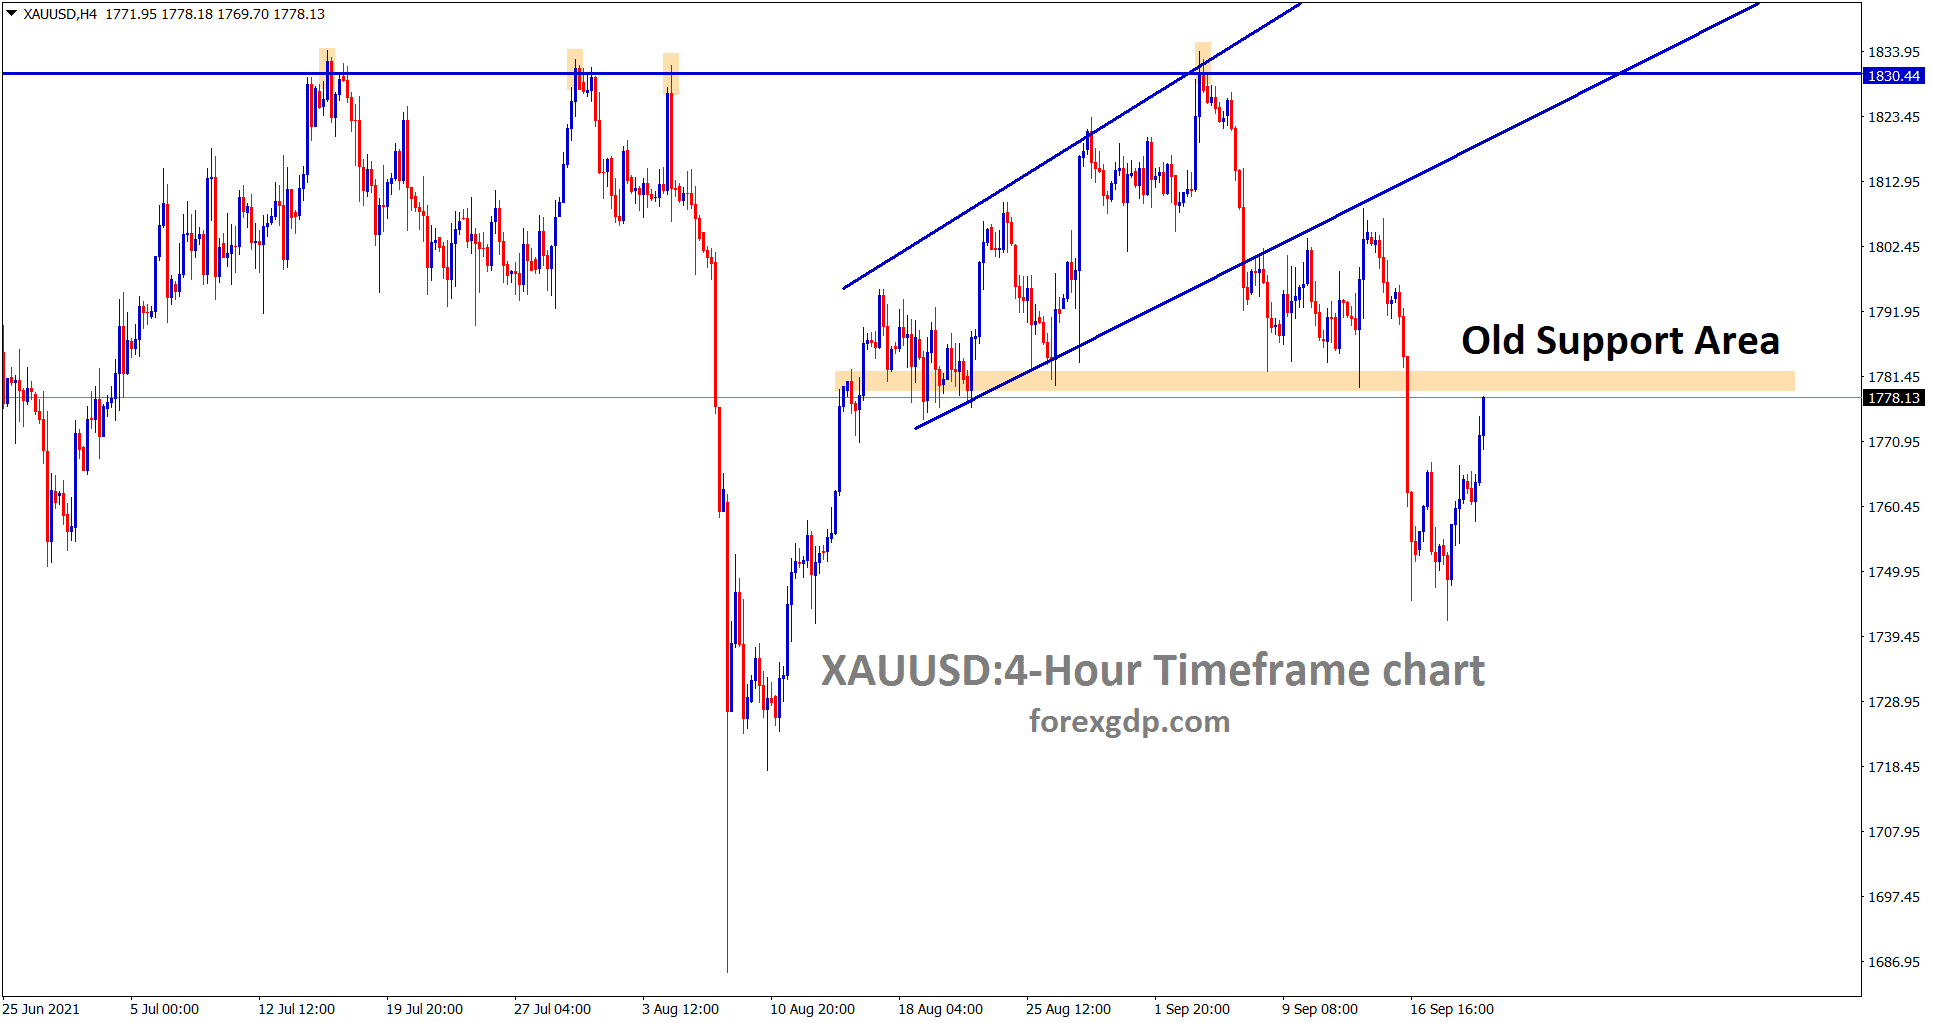 Gold is going to reach the old support area which may have chances to turn into new resistance however wait for the confirmation of reversal.